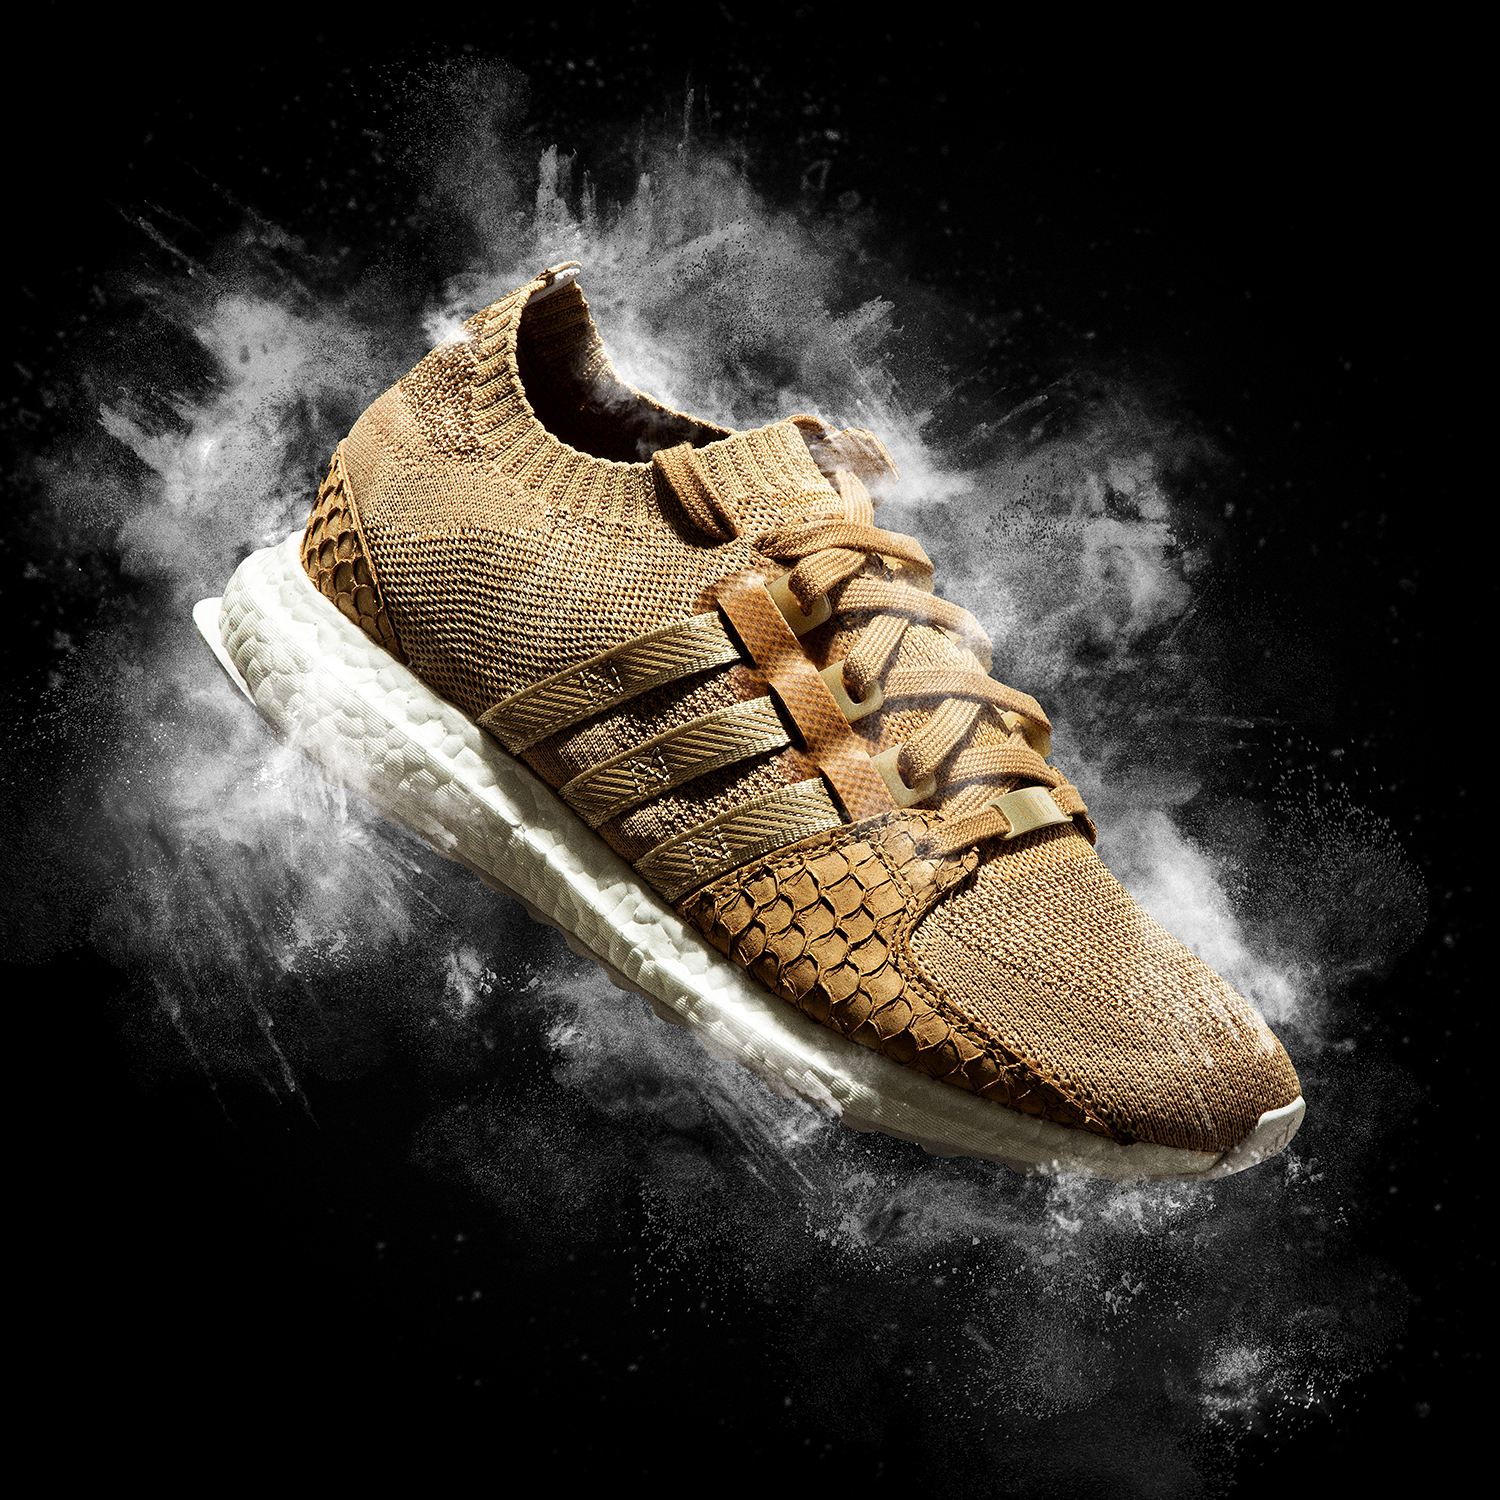 Photography by Kev Foster for Philip Browne_adidas x king push_wht powder.jpg